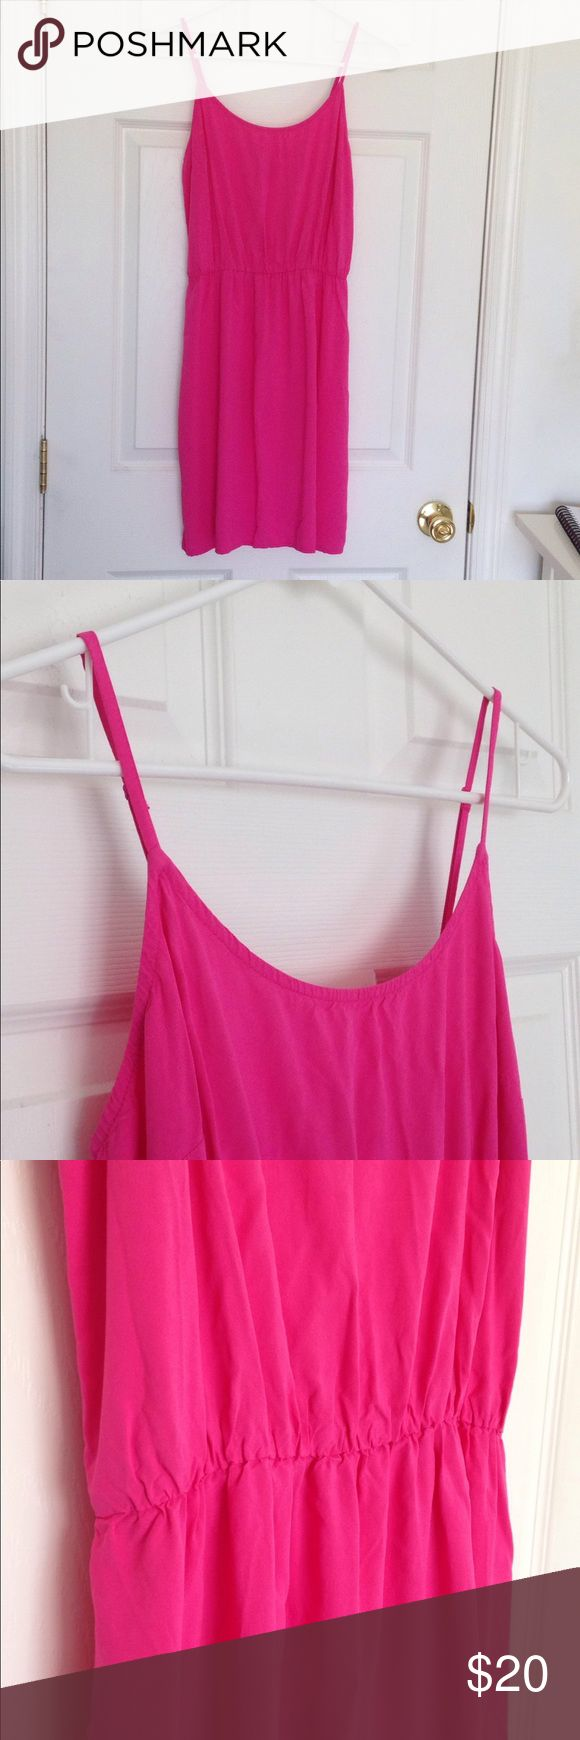 "Pink Cami Sundress Pink Cami Sundress. Elastic band at waist and straps adjustable. Lightweight. 100% rayon. No stains or holes. Measurement laying flat: bust: 16"" waist: 12.5"" length: 34"" Old Navy Dresses Midi"